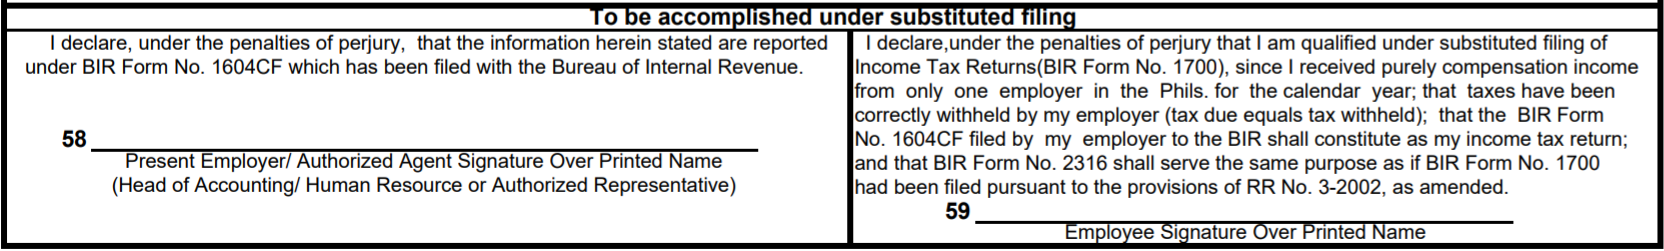 Latest updates on BIR Form 2316 requirements – Facing PH Taxes